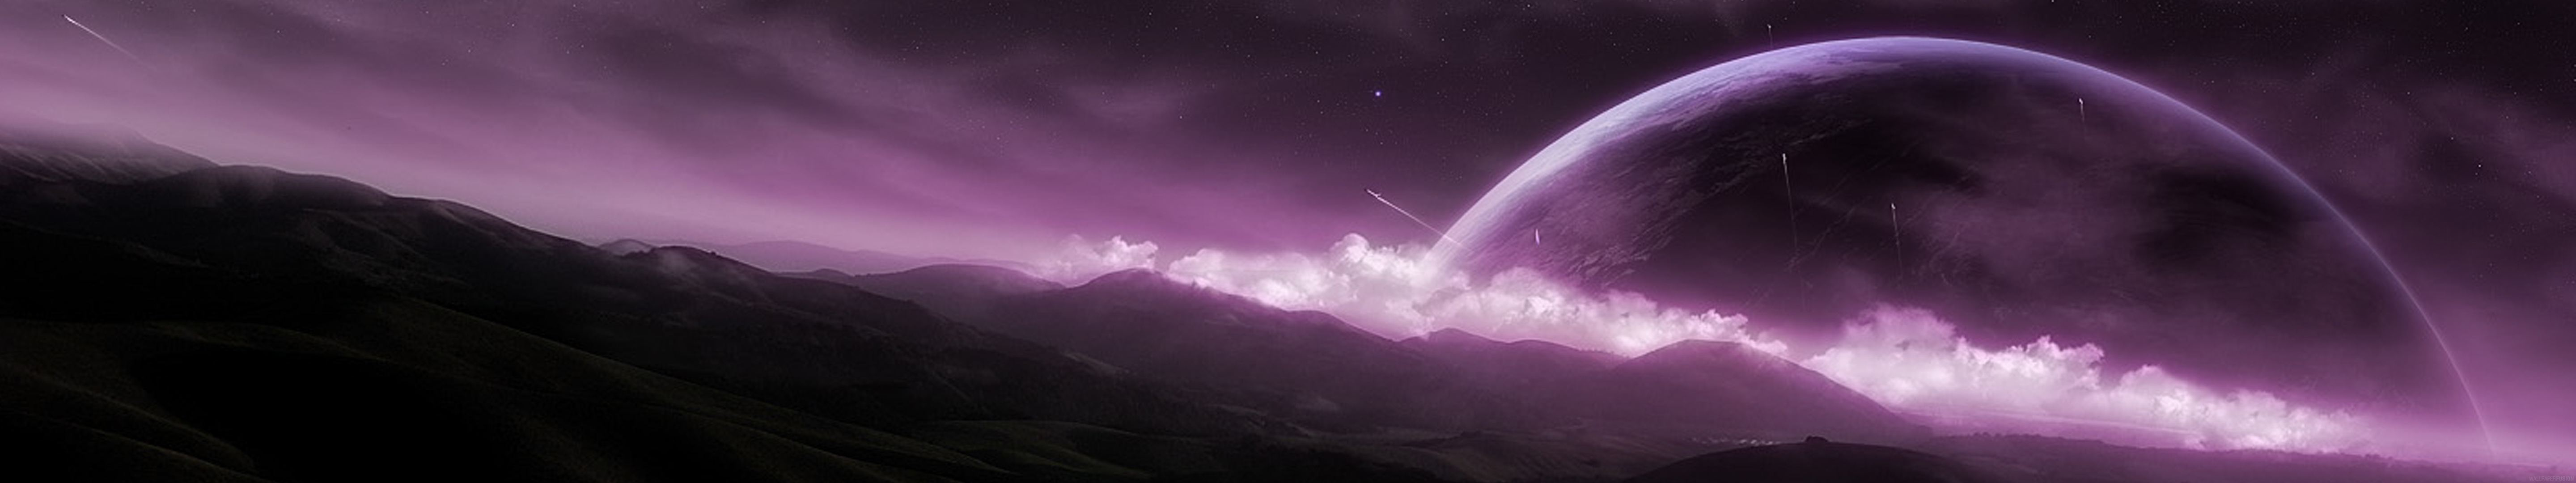 5760x1080 Wallpapers Top Free 5760x1080 Backgrounds